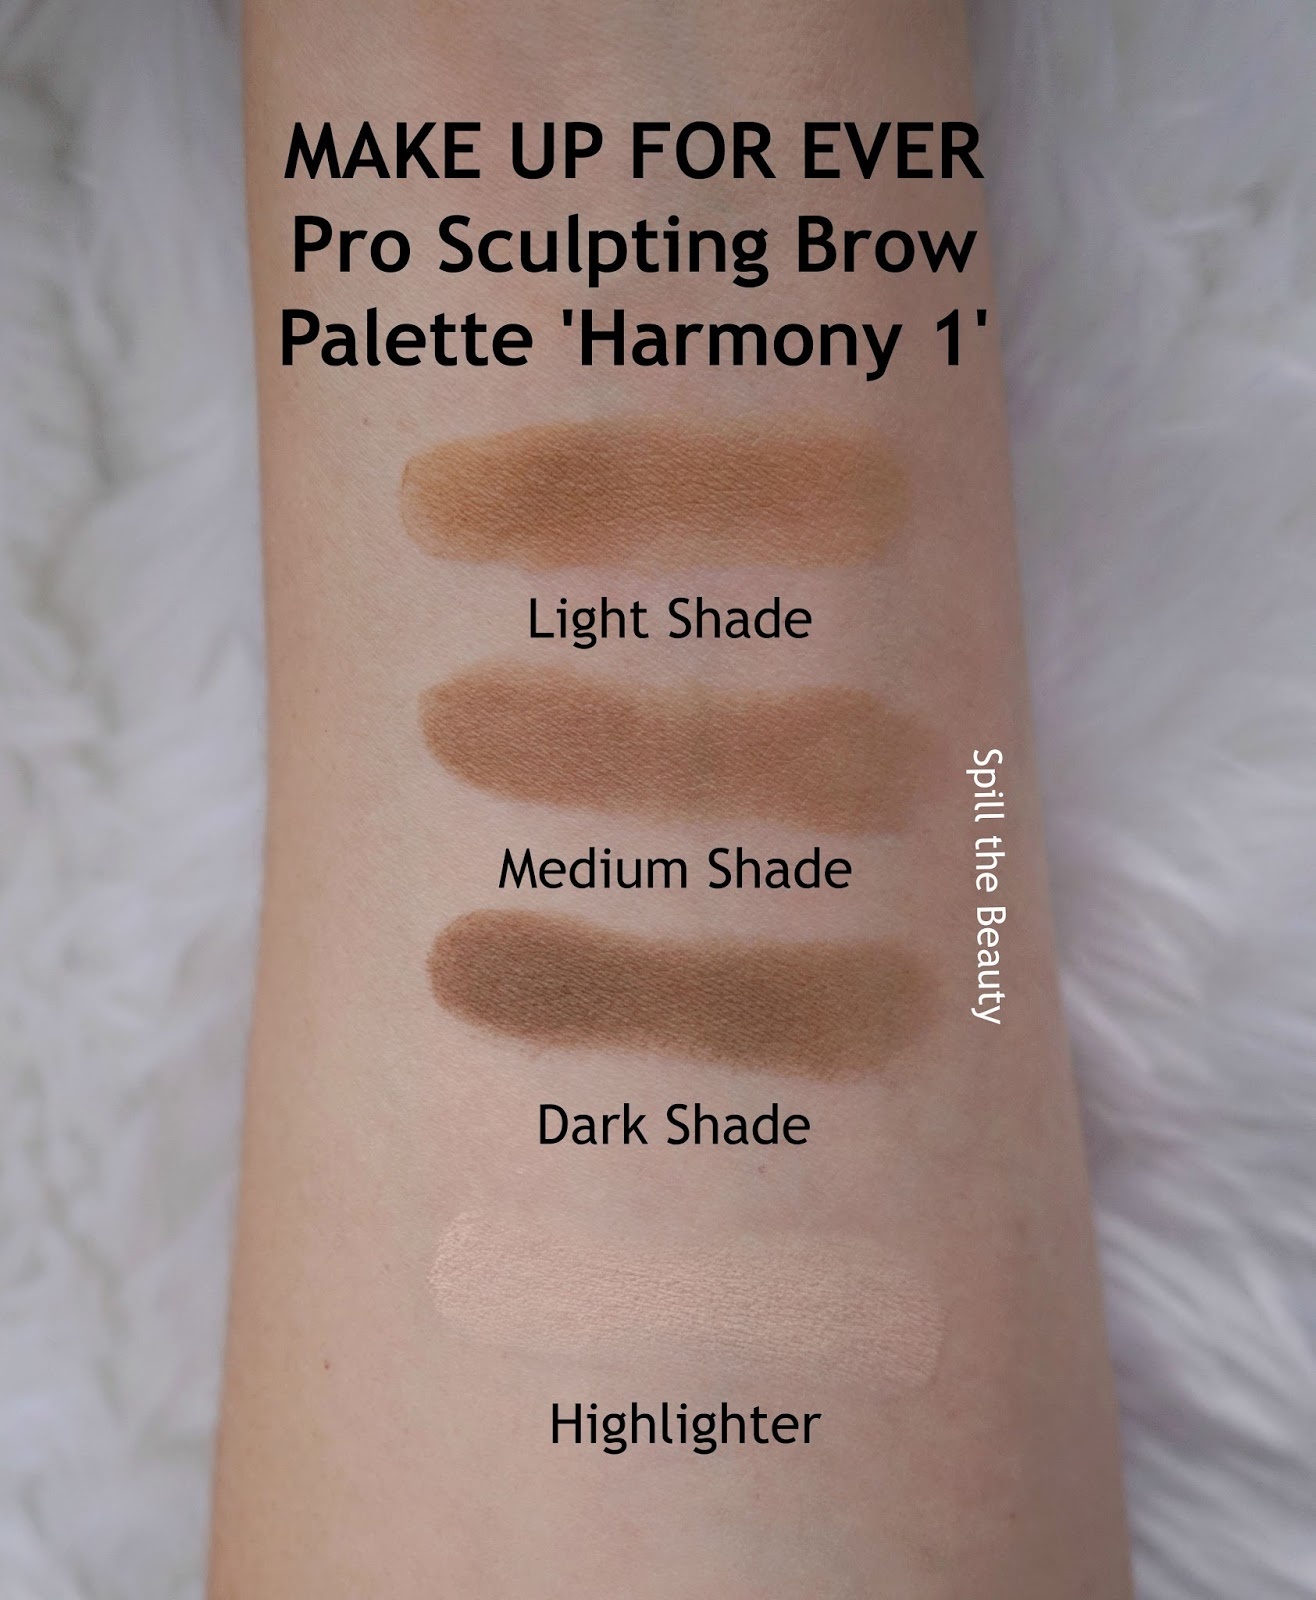 MAKE UP FOR EVER Pro Sculpting Brow Palette Harmony 1 review swatches 4 arm swatch